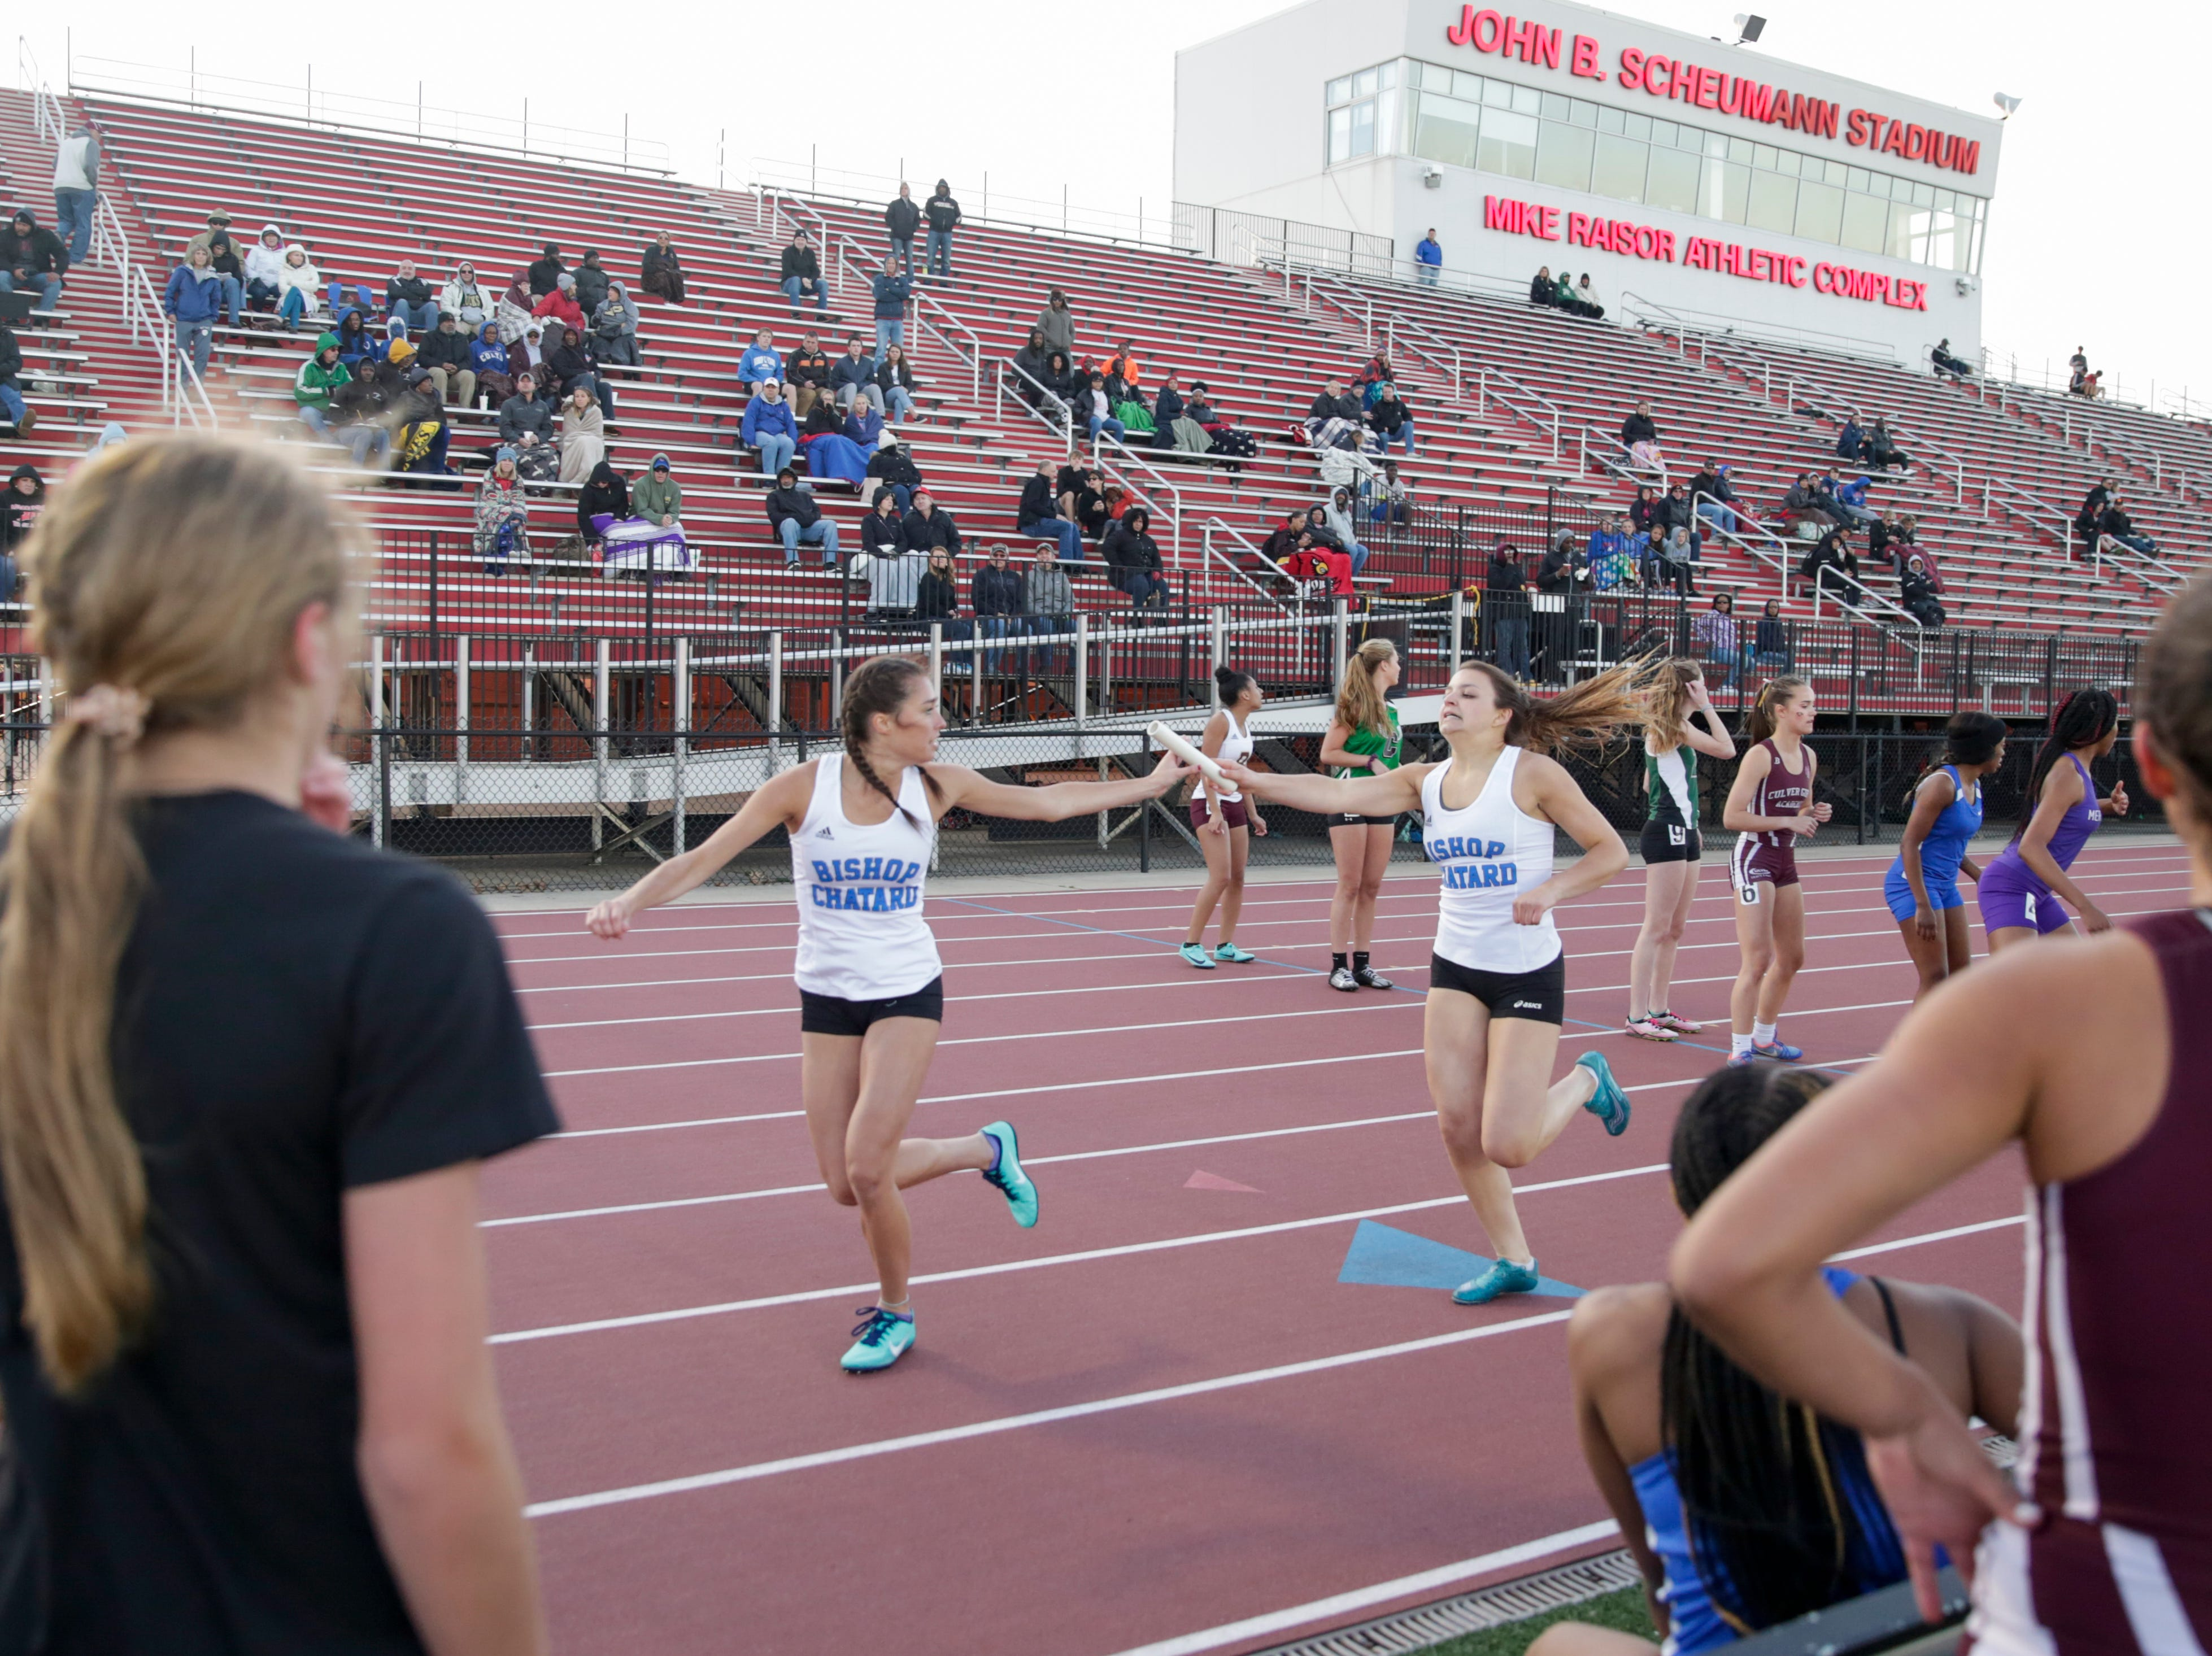 Runner's hand of the baton as they compete in the women's 4x400 meter relay during the 2019 Sprinters Showcase, Friday, April 12, 2019, at Lafayette Jeff High School in Lafayette.